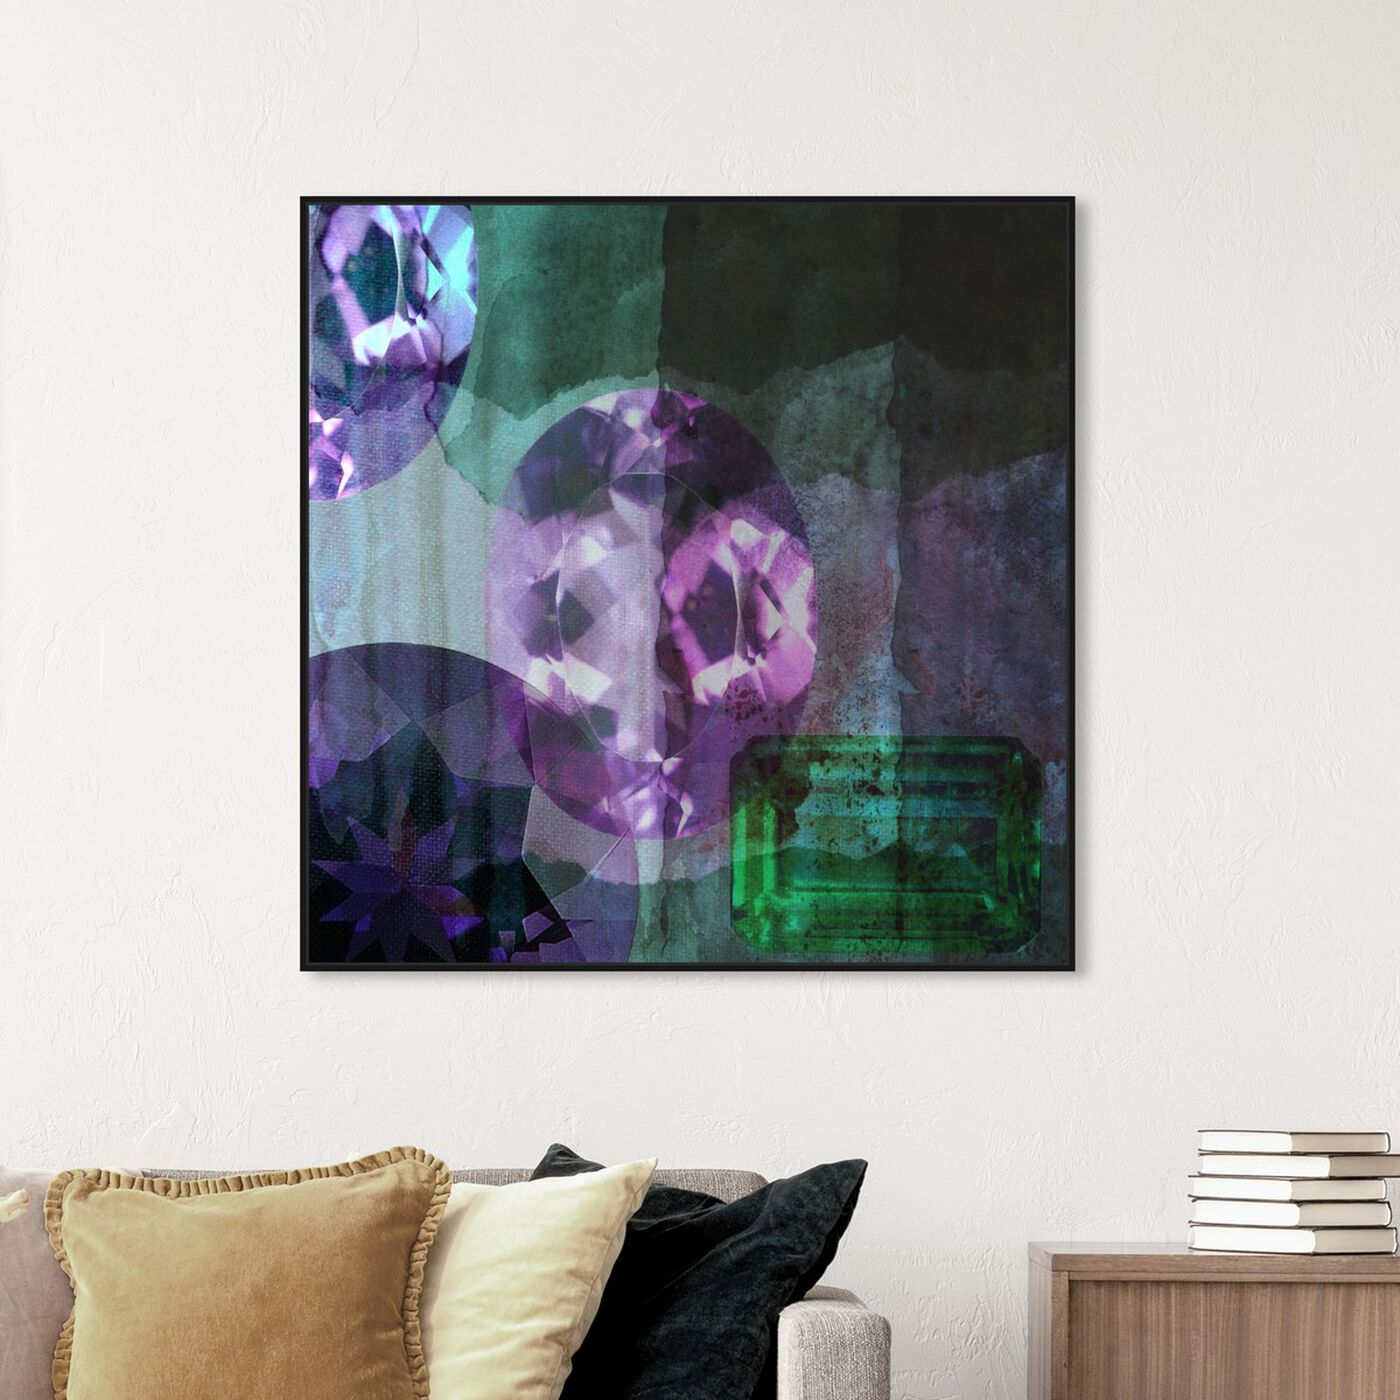 Hanging view of Texture Study III featuring abstract and crystals art.